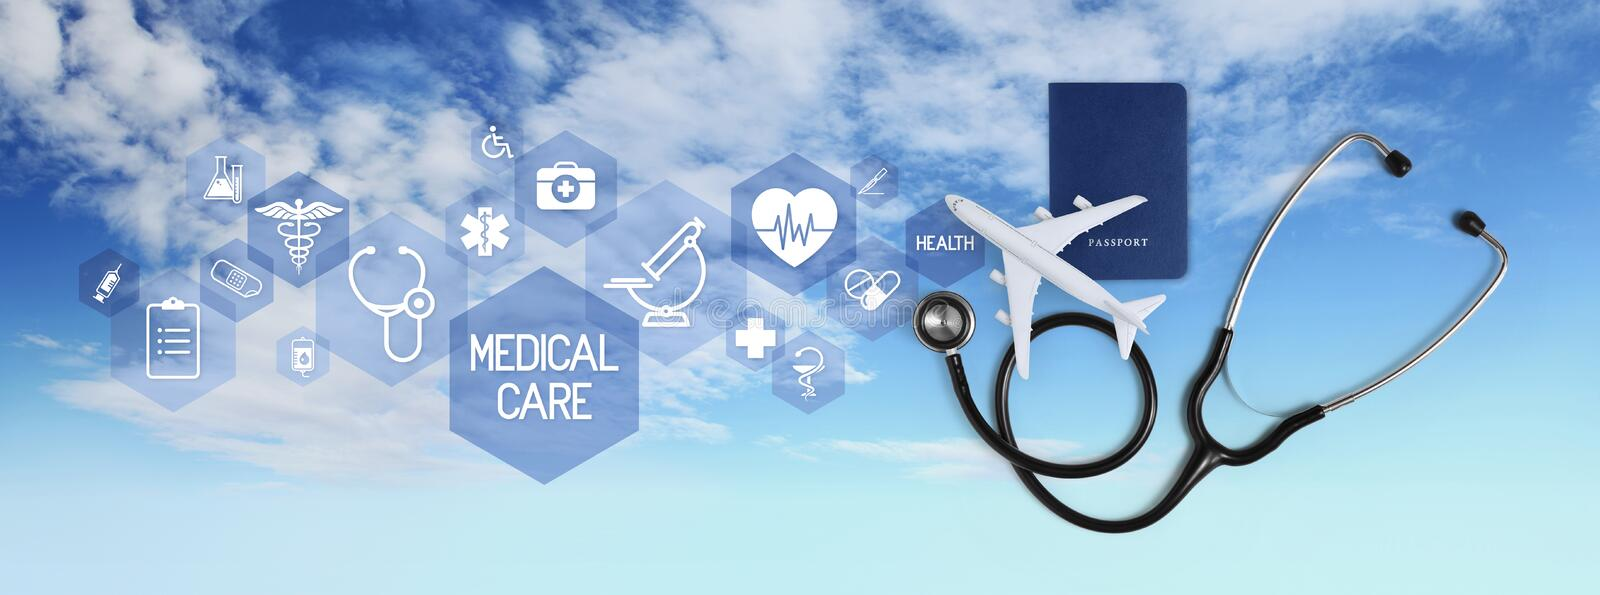 International medical travel insurance concept, stethoscope, passport and airplane, with icons and symbols isolated on white. Background stock image